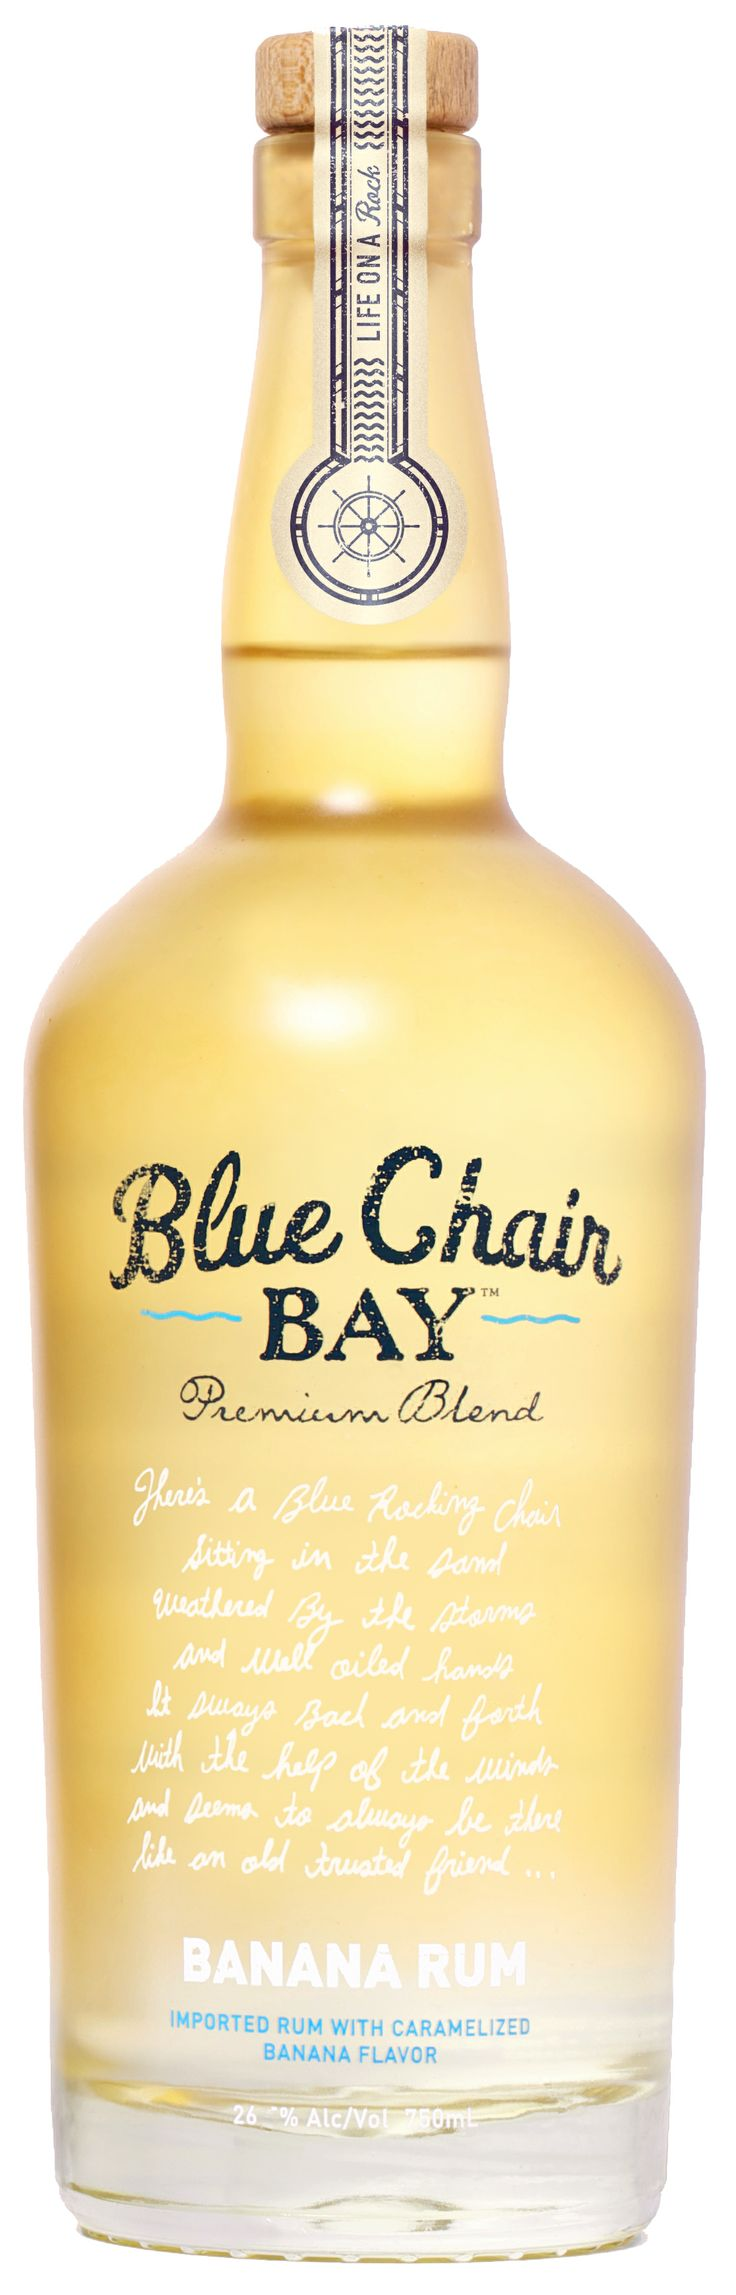 Fishbowl Spirits Has Launched A New Flavour In Its Blue Chair Bay Portfolio  Of Rums. Related To Product Launches, Spirits, Diageo,